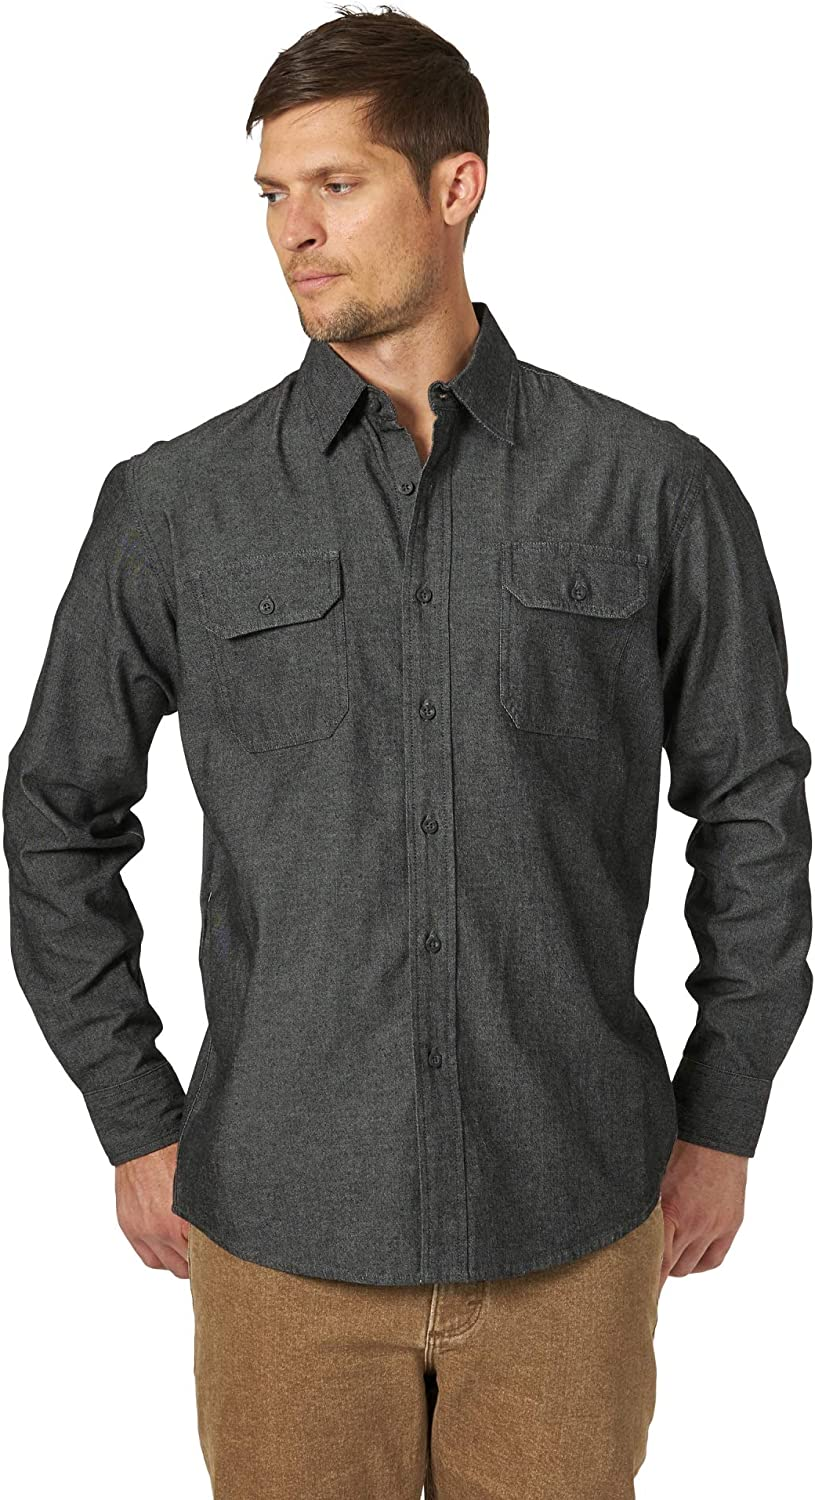 Men's Vintage Workwear Inspired Clothing Wrangler Authentics Mens Long Sleeve Classic Woven Shirt $52.00 AT vintagedancer.com